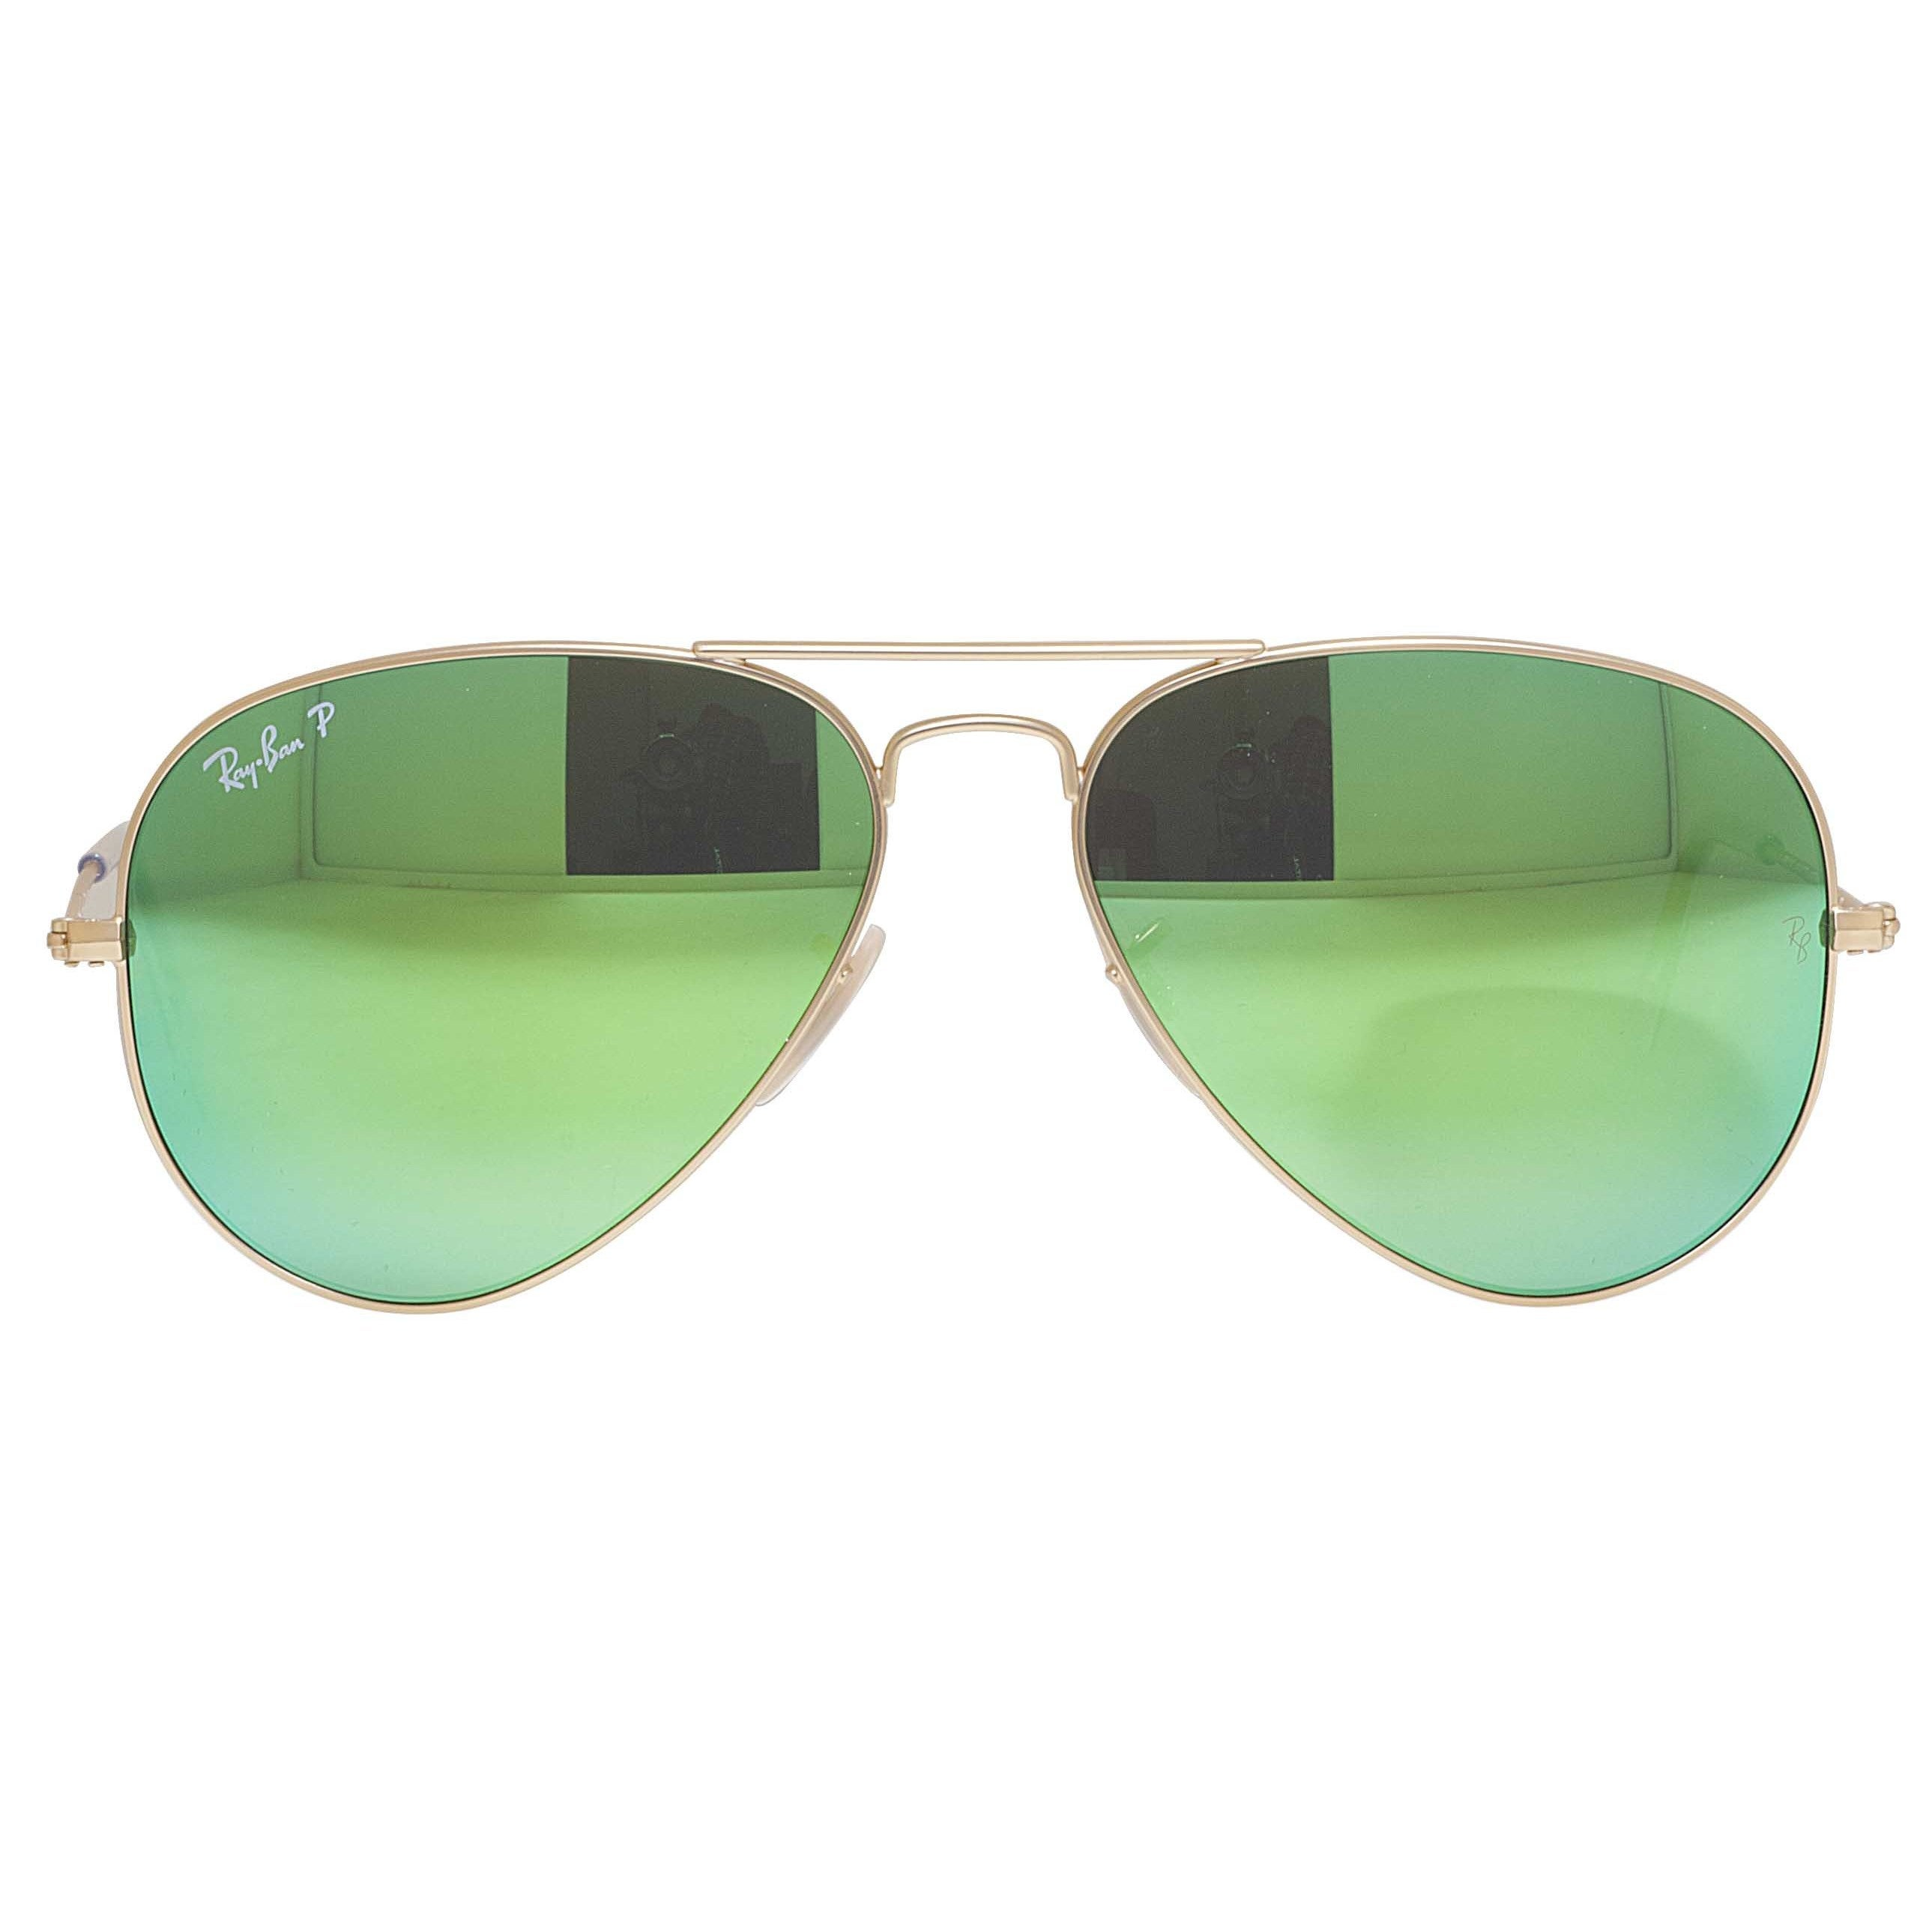 04ba0ca2ee Ray-Ban Aviator RB3025 Unisex Gold Frame Green Flash Polarized Lens  Sunglasses